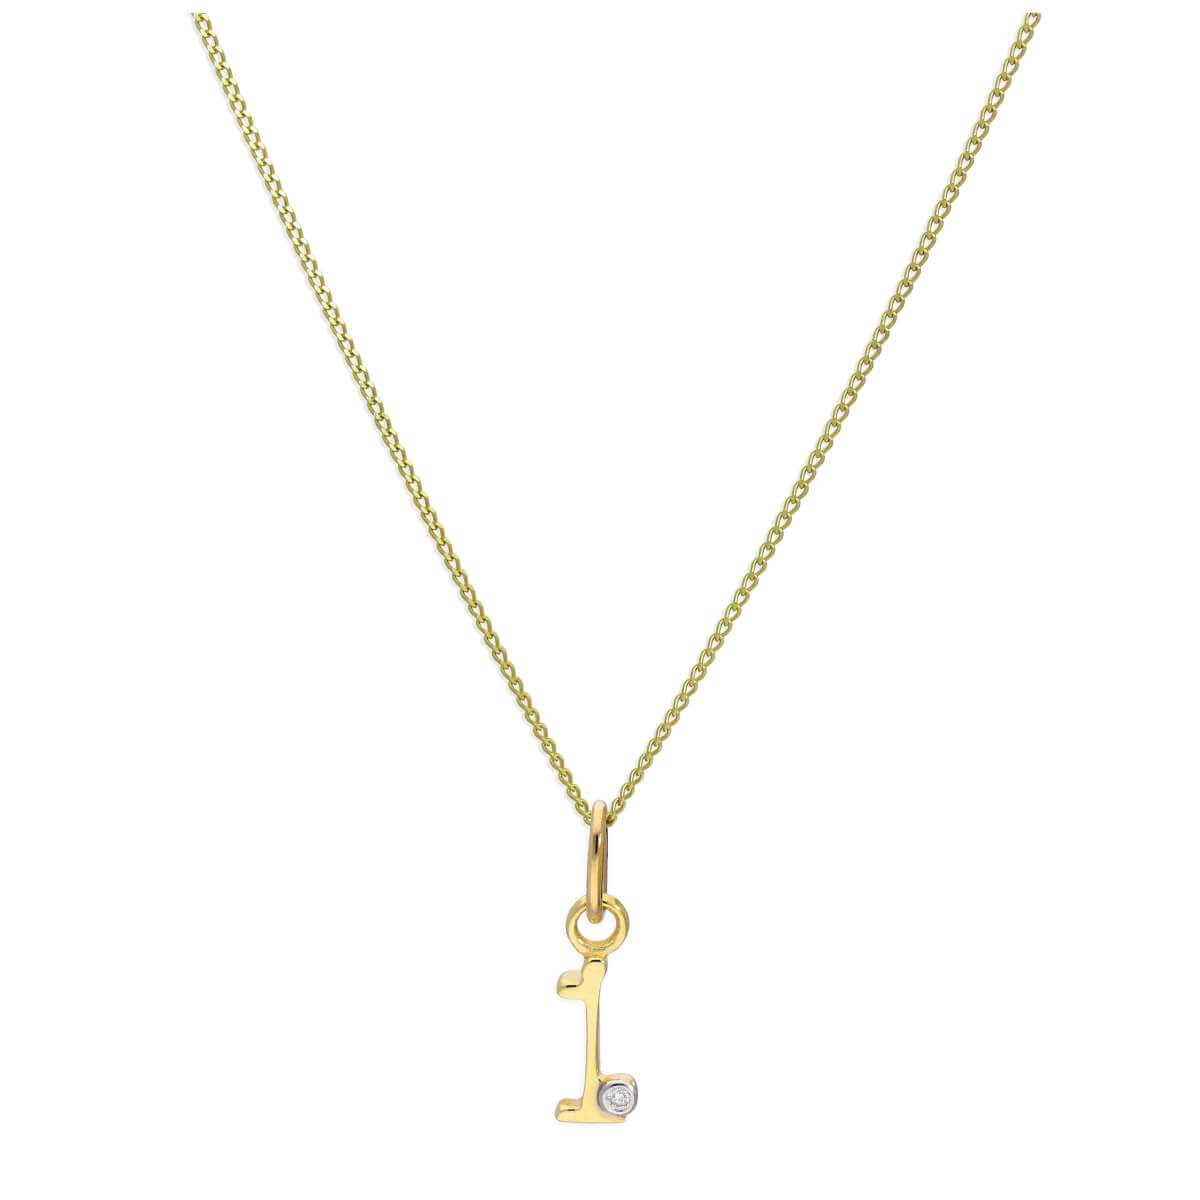 9ct Yellow Gold Single Stone Diamond 0.4 points Letter I Necklace Pendant 16 - 20 Inches